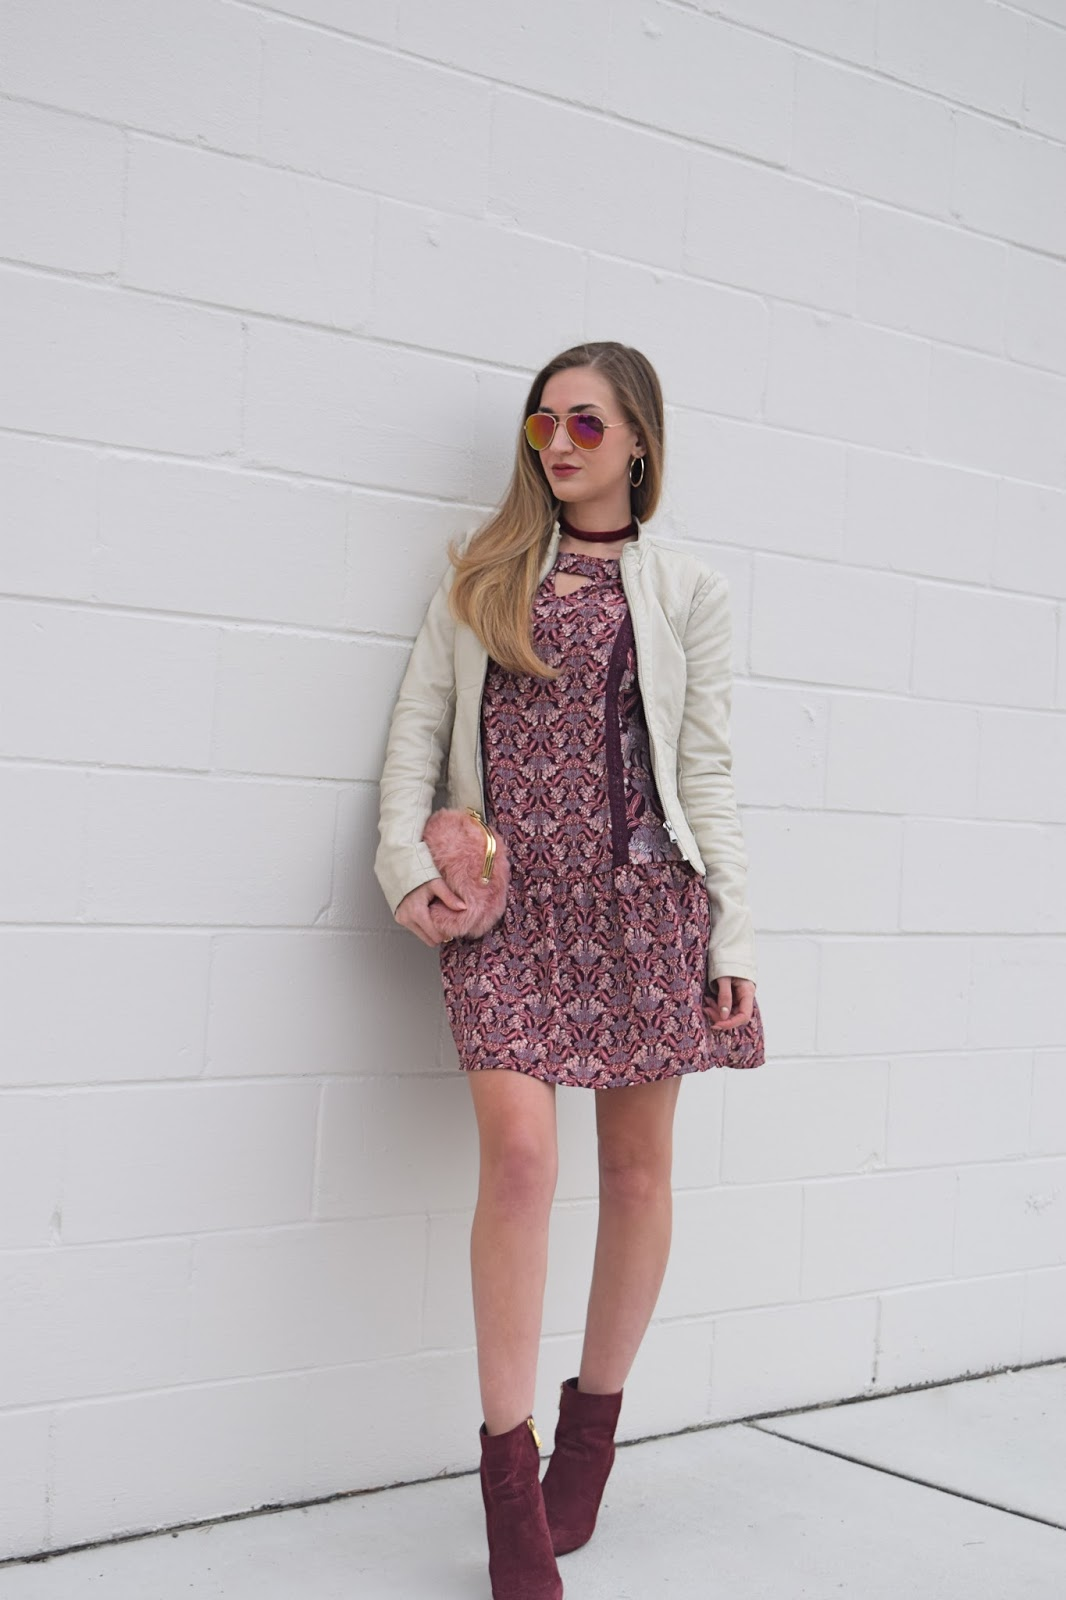 wearing exhilaration printed drop waist dress, cream faux leather moto jacket, who what wear fur mini bag, burgundy suede booties, burgundy velvet choker